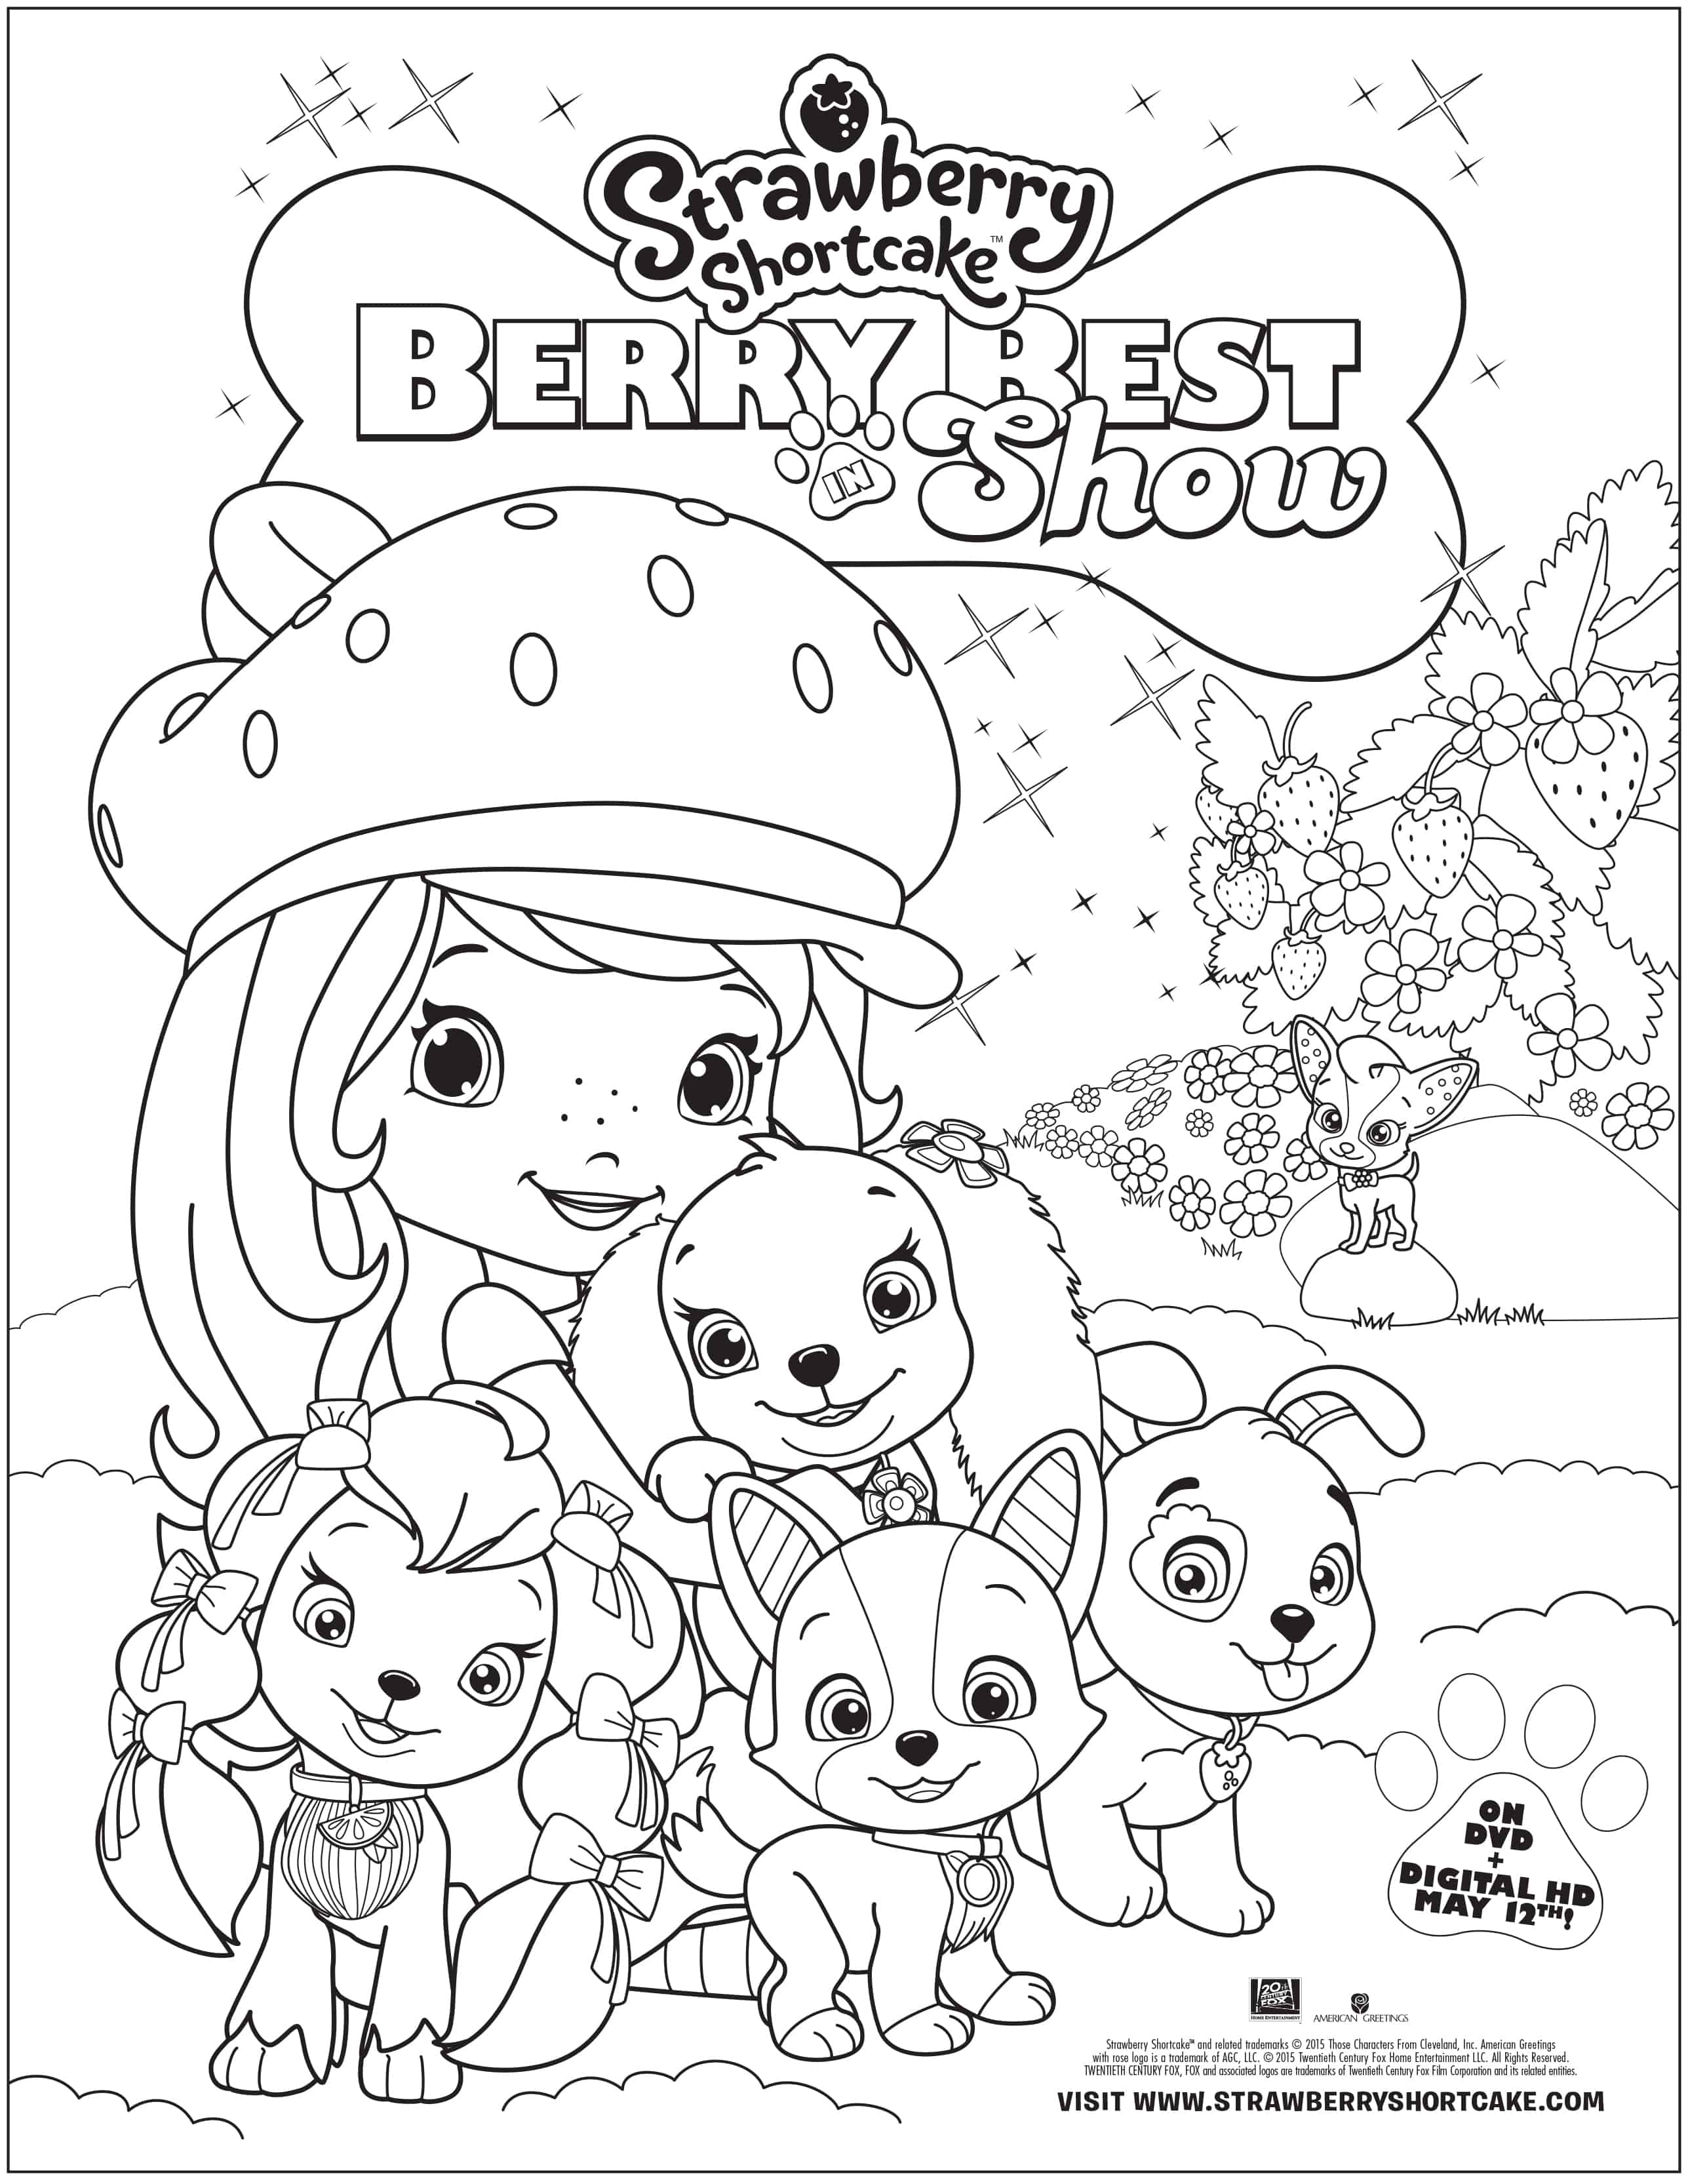 Strawberry shortcake berry best in show free printable for Coloring pages of strawberry shortcake and friends